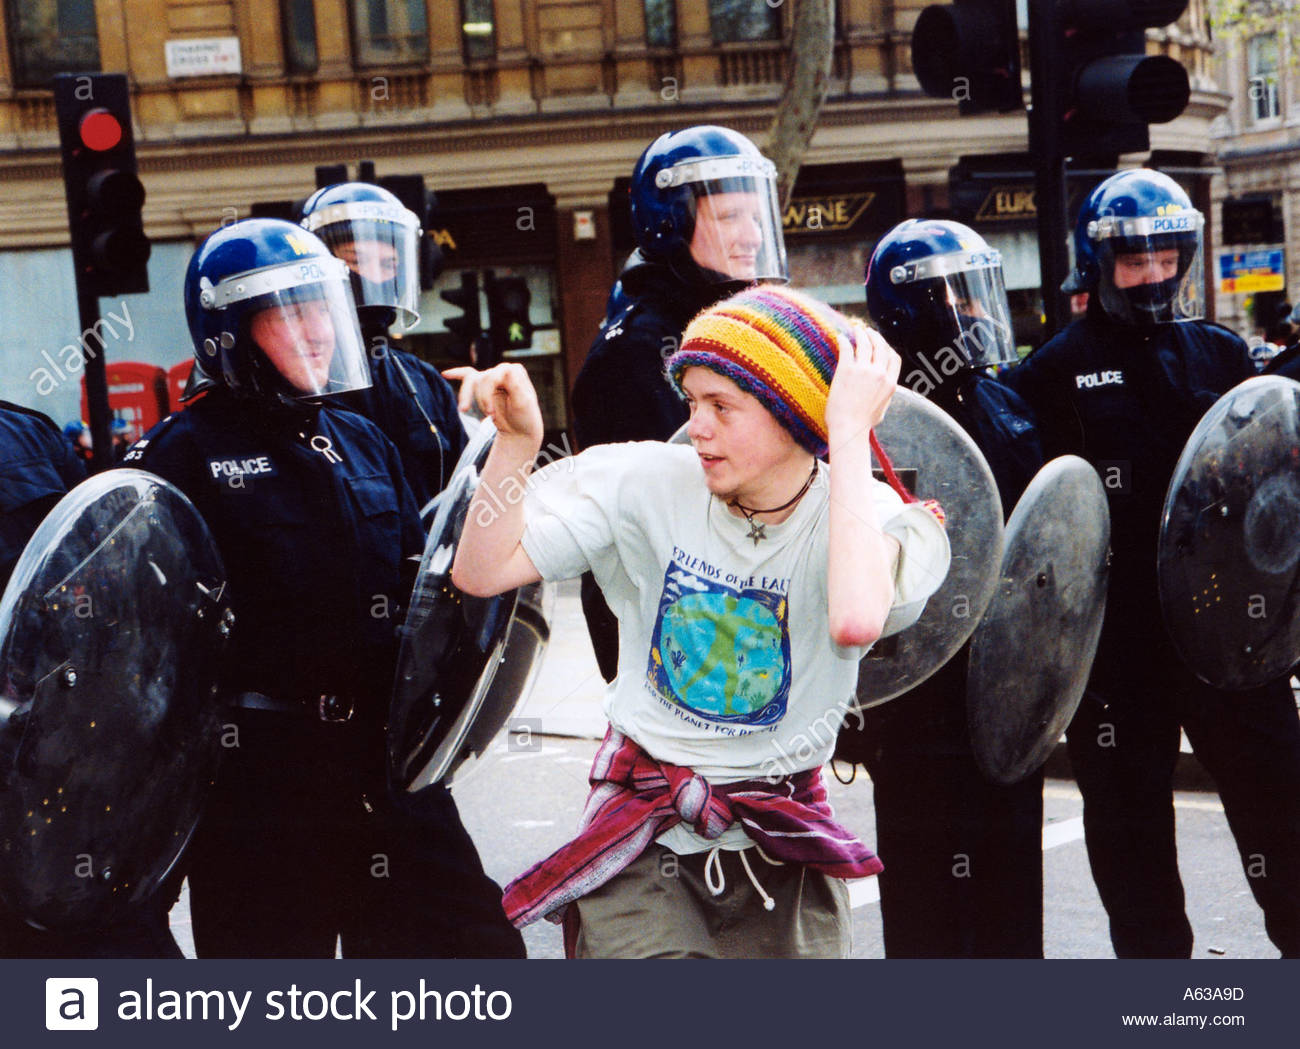 May Day anti capitalist demo Trafalgar Square London 1 May 2000 Young protester riot police UK - Stock Image